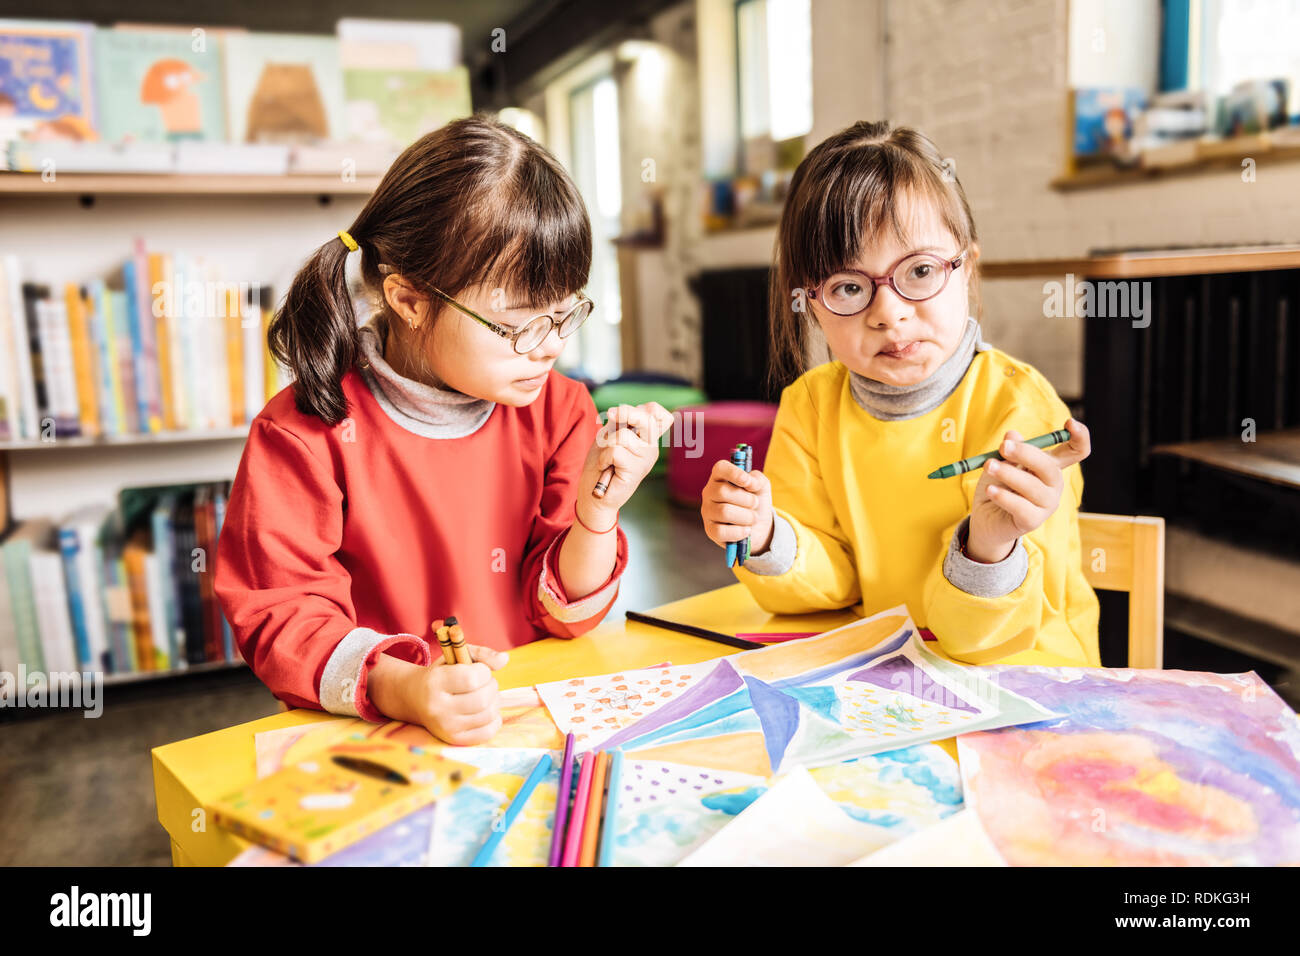 Two preschool girls playing and coloring pictures in rehabilitation center - Stock Image